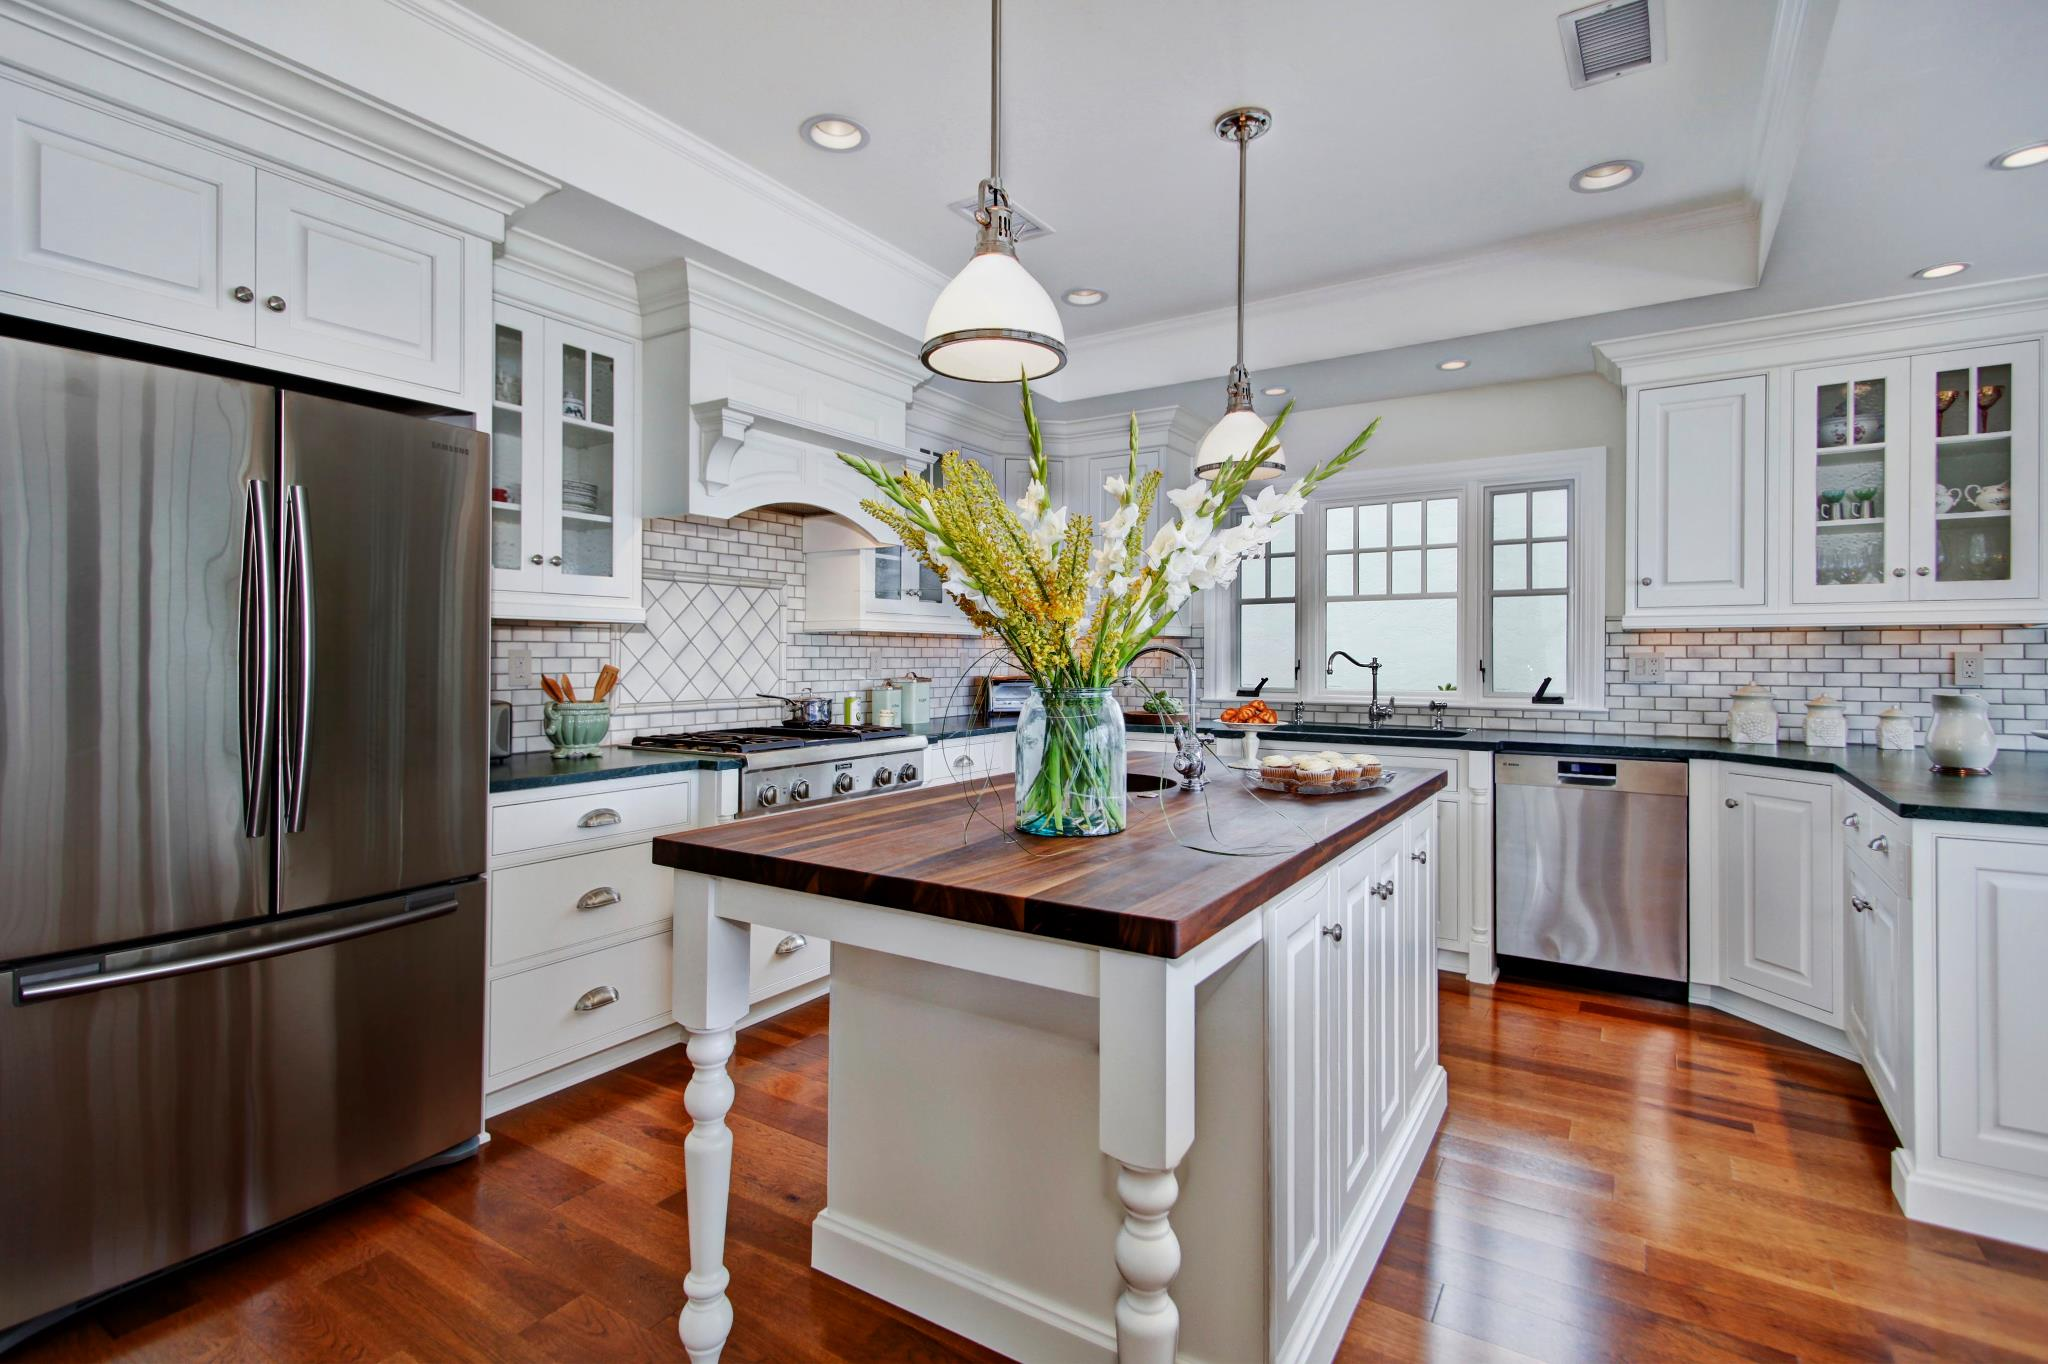 Best Kitchen Gallery: Dover Nh Kitchen Cabi S Remodeling Countertops Select  Cabi Ree Of Wellborn